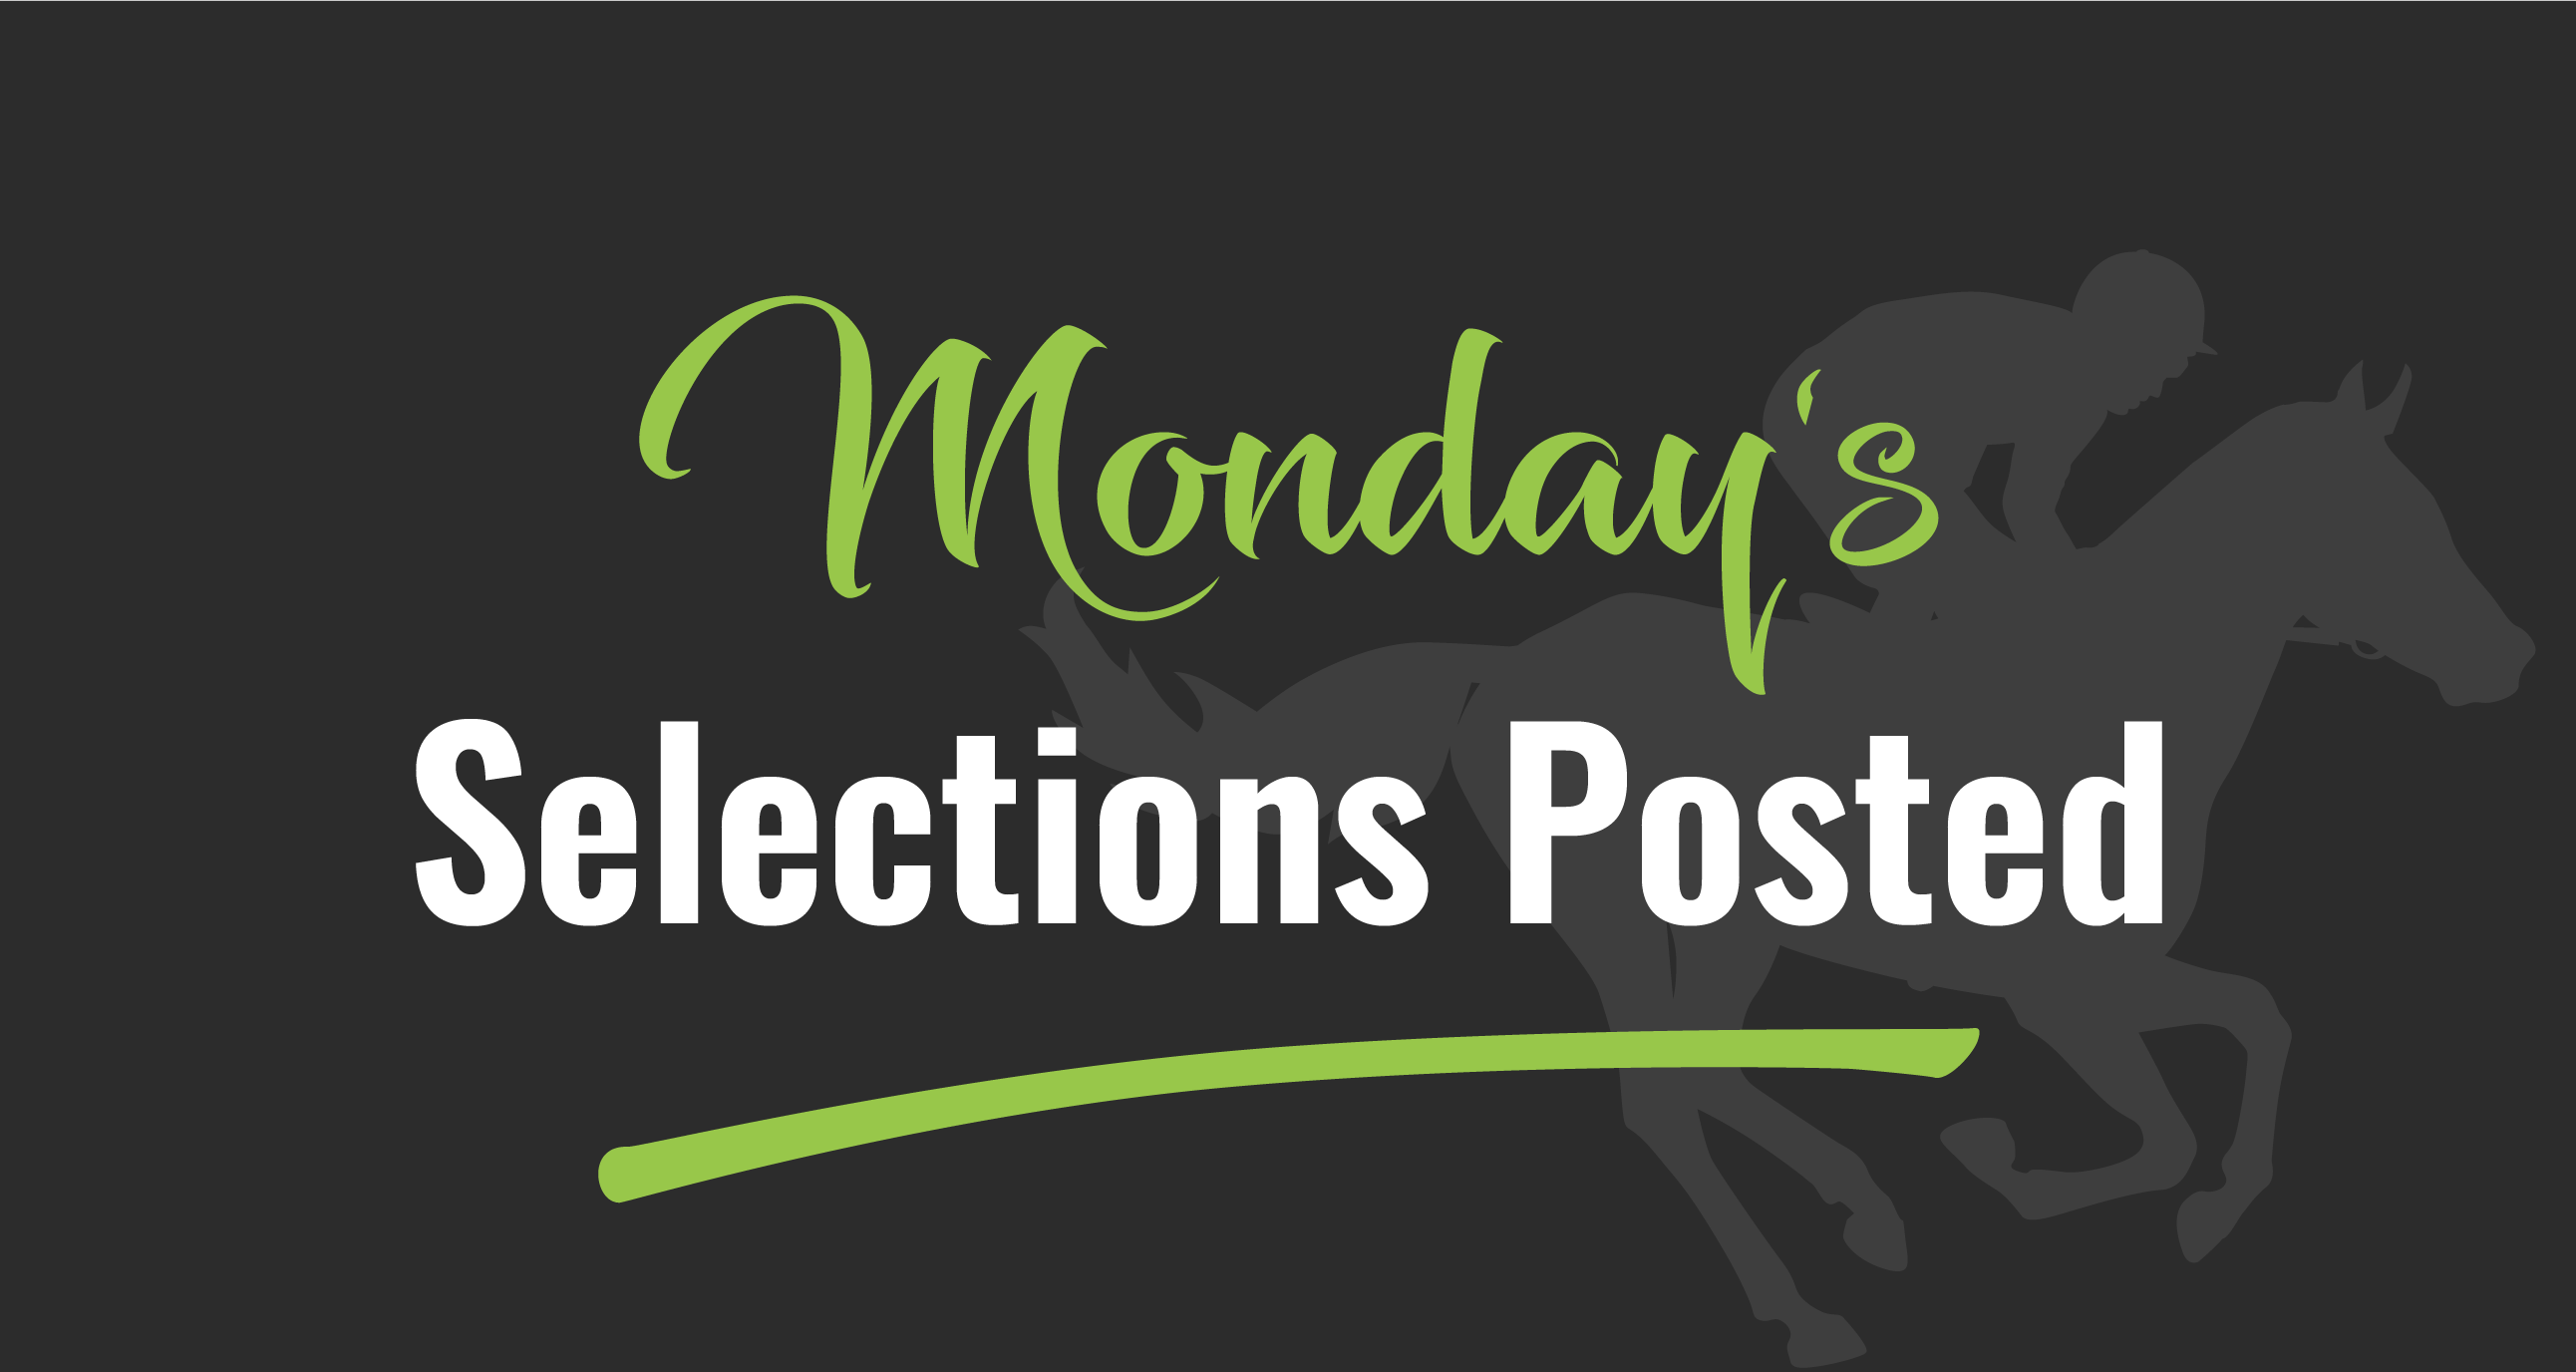 Selections for Monday 12 August 2019